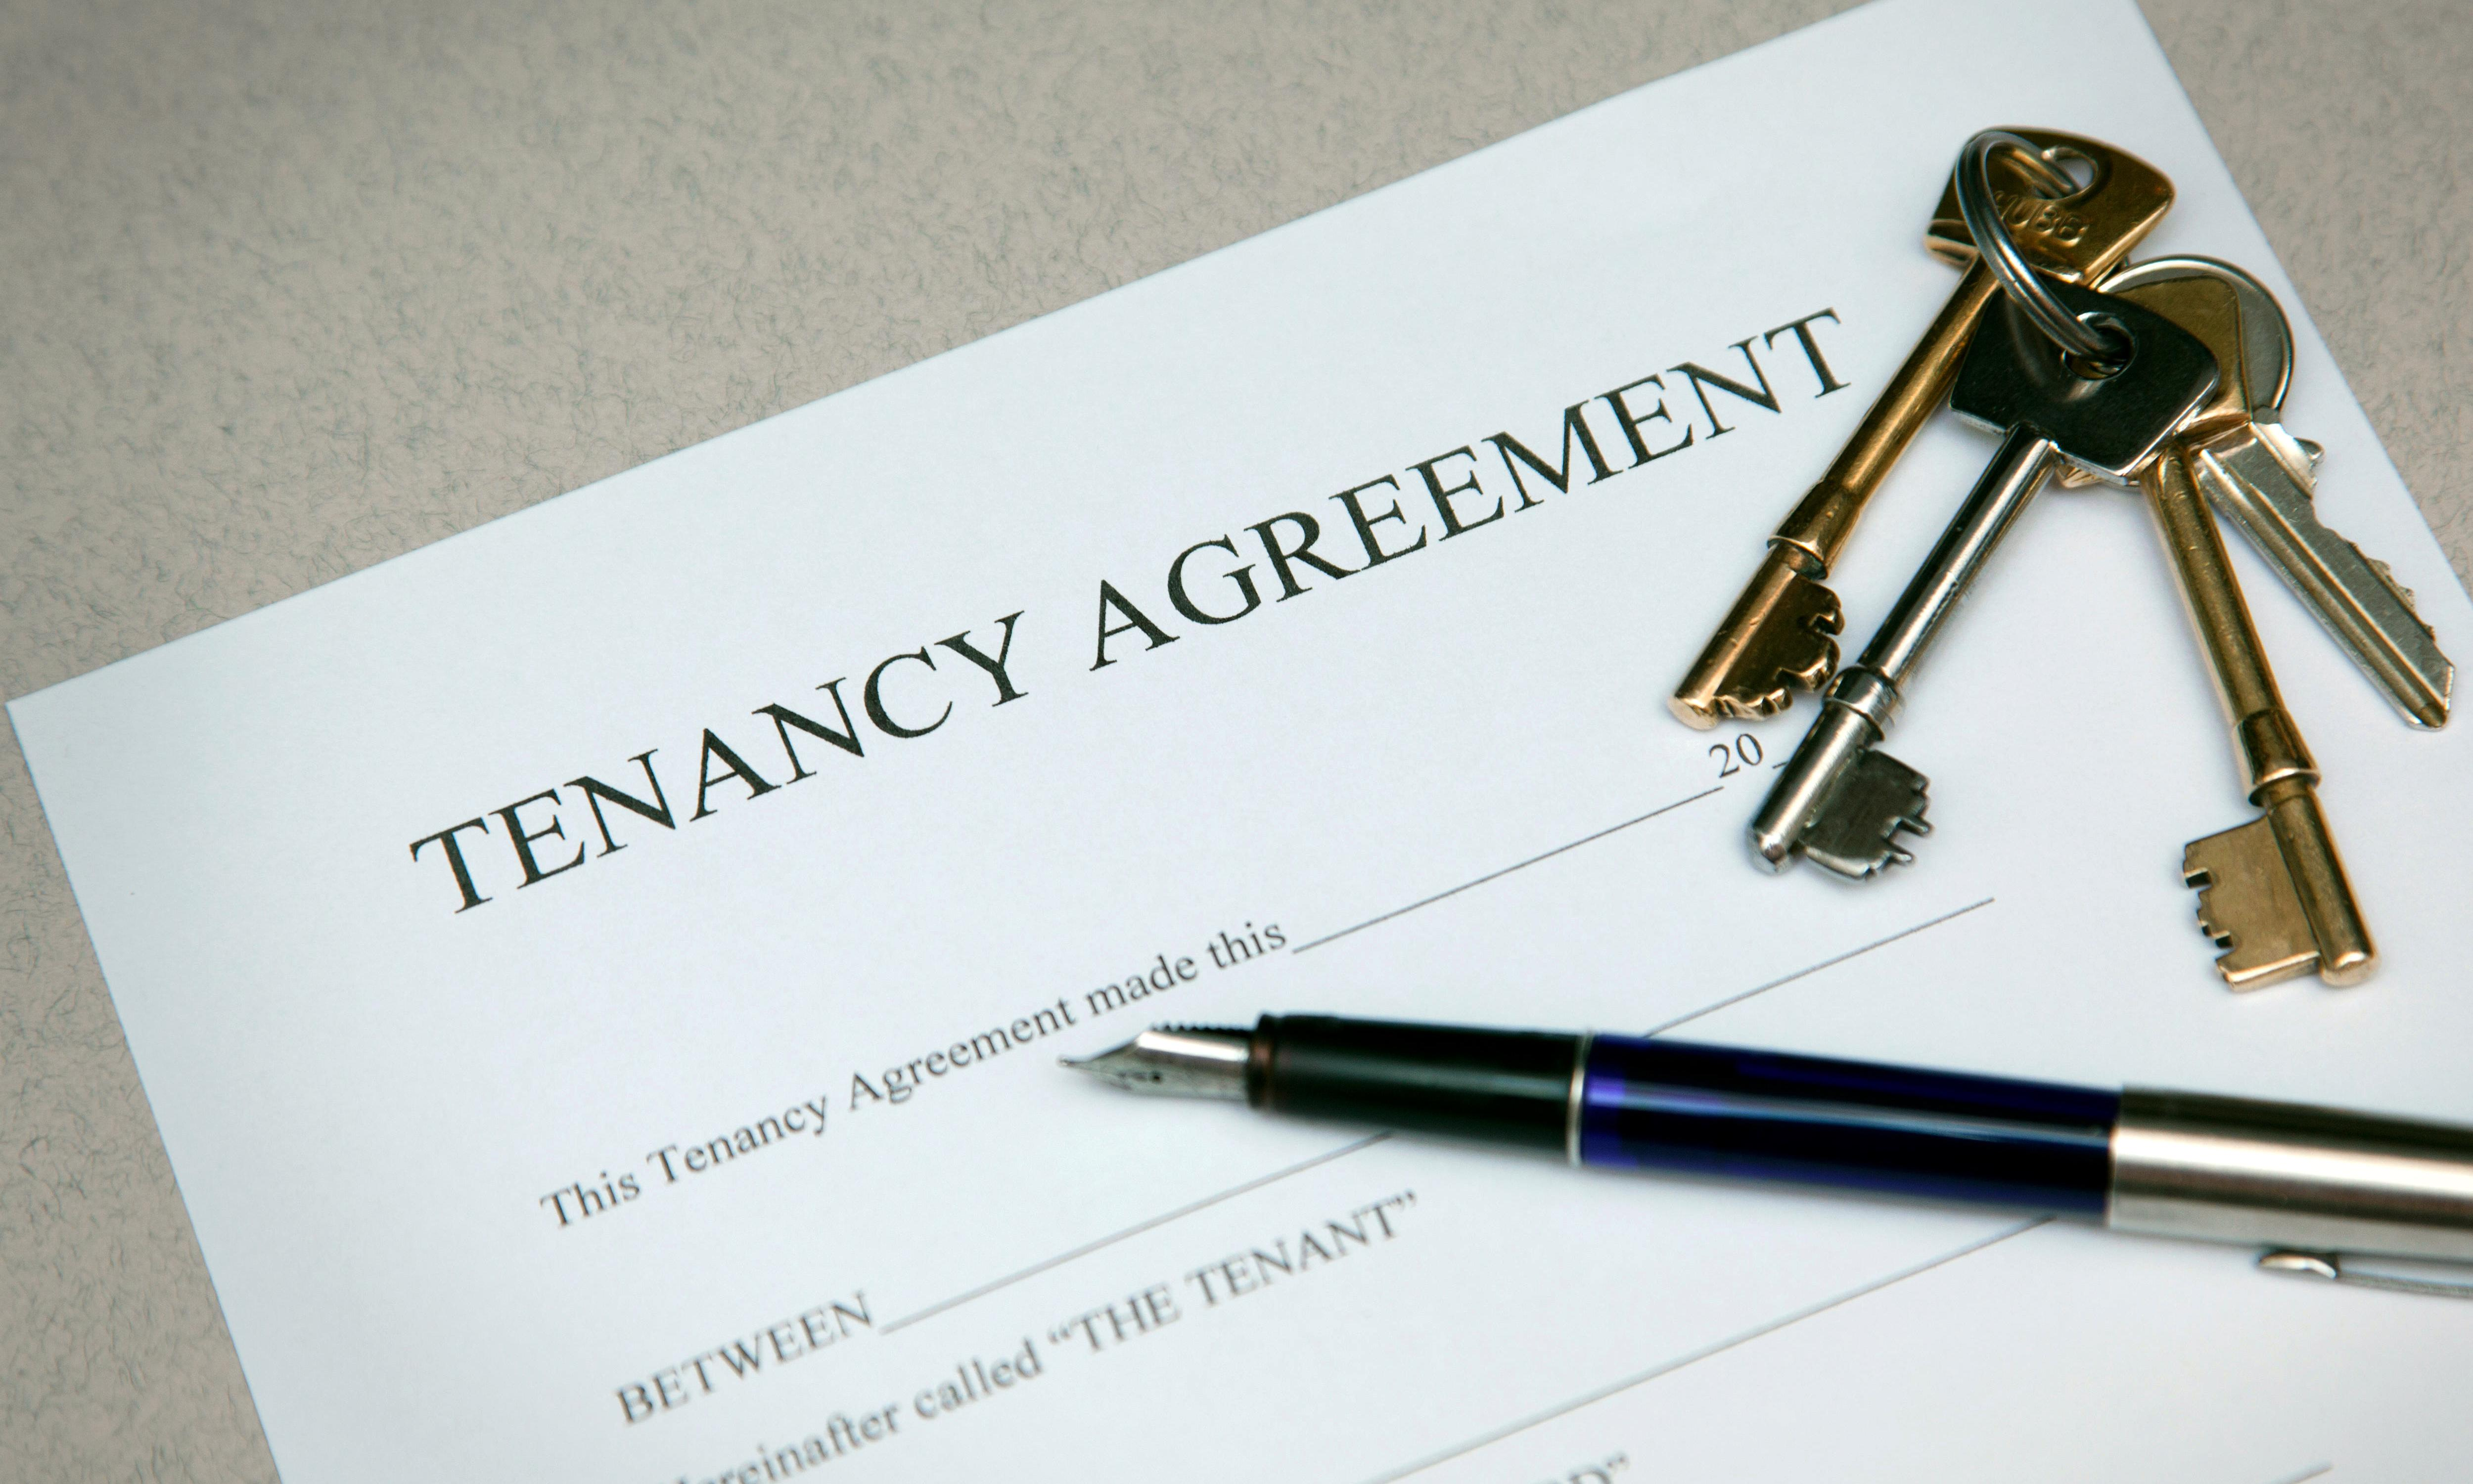 Can my brother be my tenant even if my mortgage doesn't allow it?